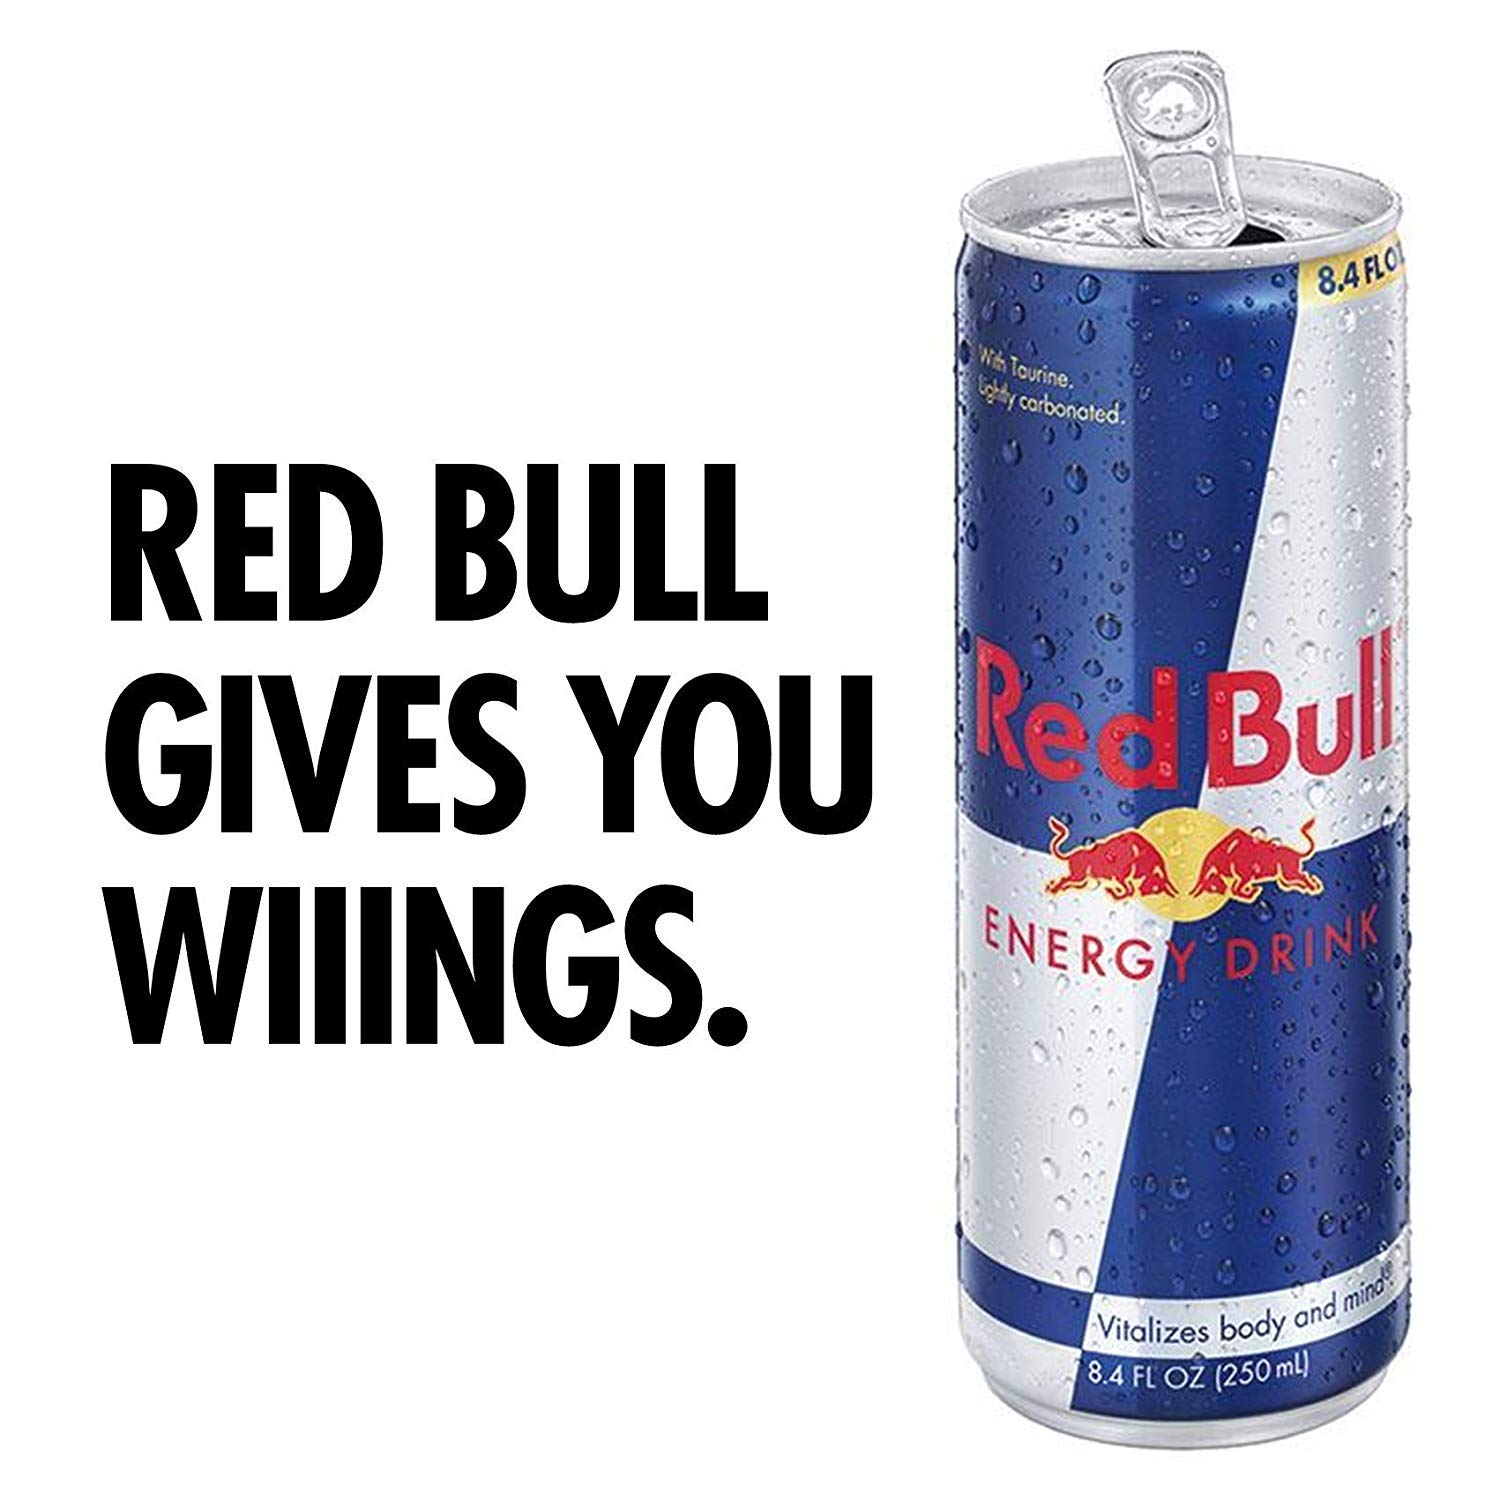 Red Bull Energy Drink, Peach-Nectarine, 24 Pack of 12 Fl Oz, Peach Edition by Red Bull (Image #5)